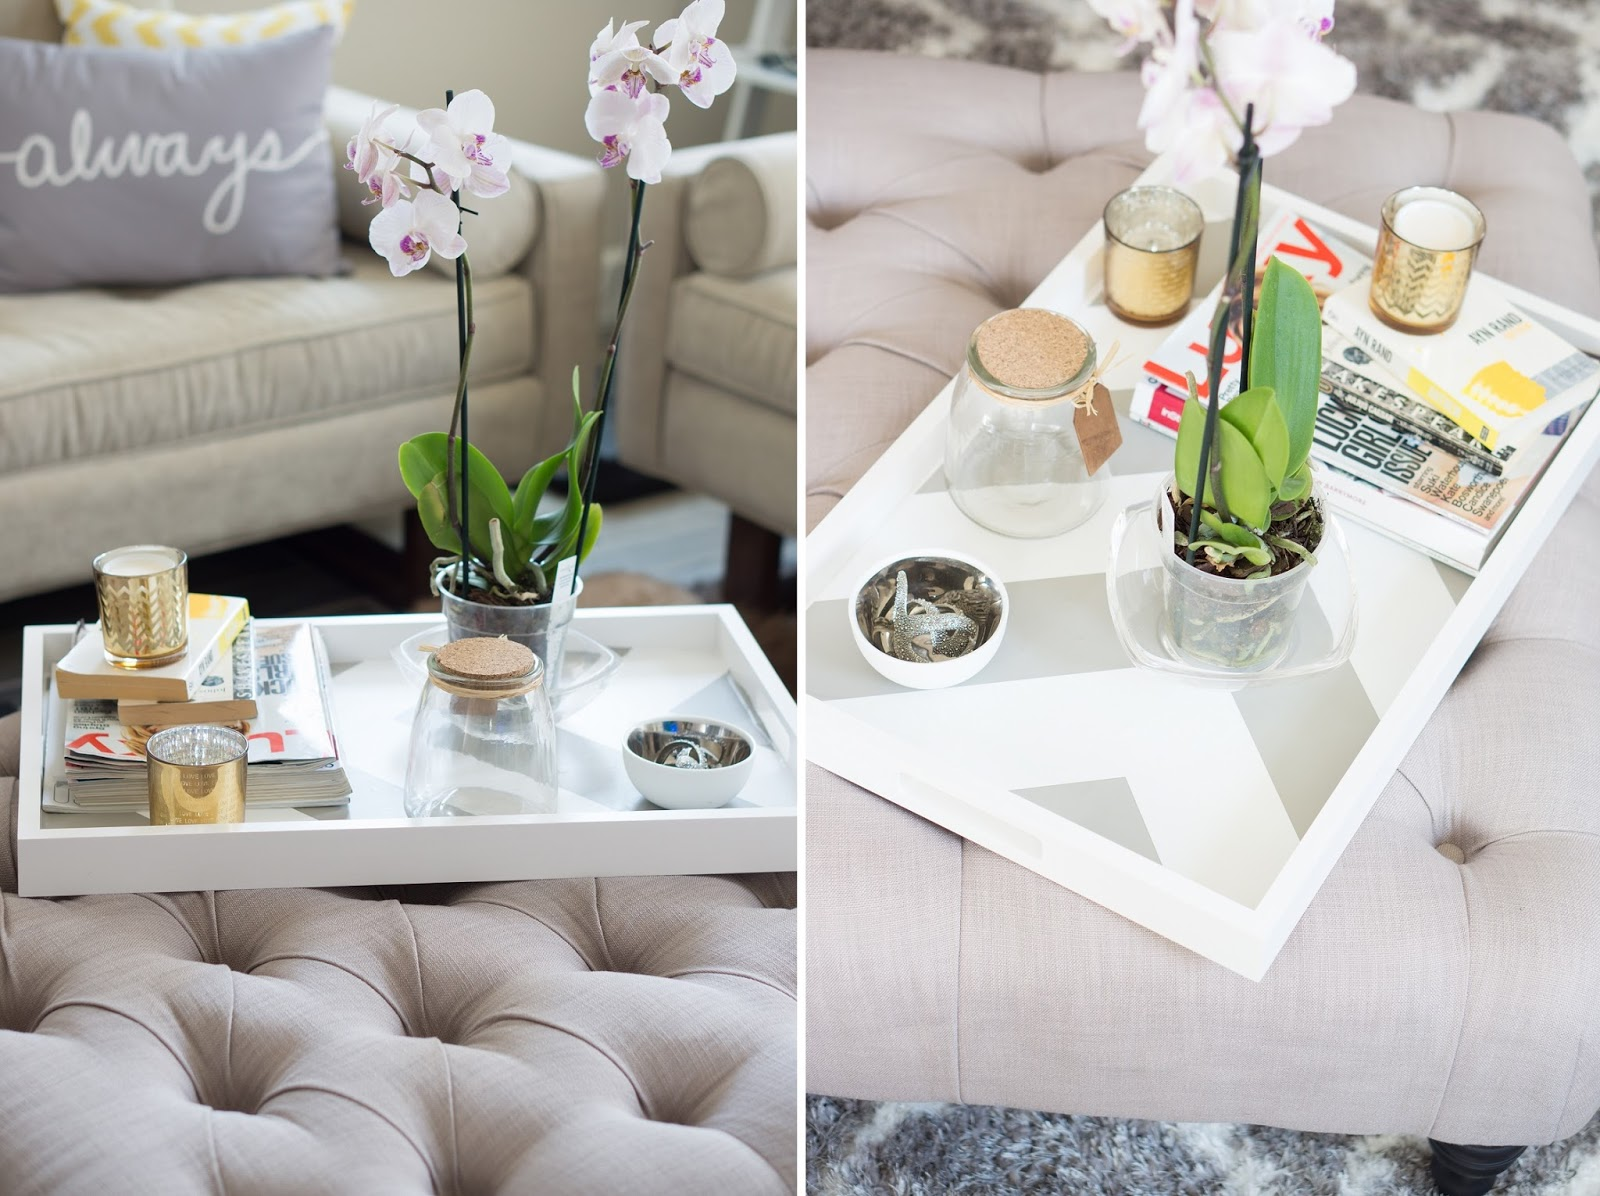 Inspiring style diy coffee table tray oh to be a muse inspiring style diy coffee table tray geotapseo Choice Image